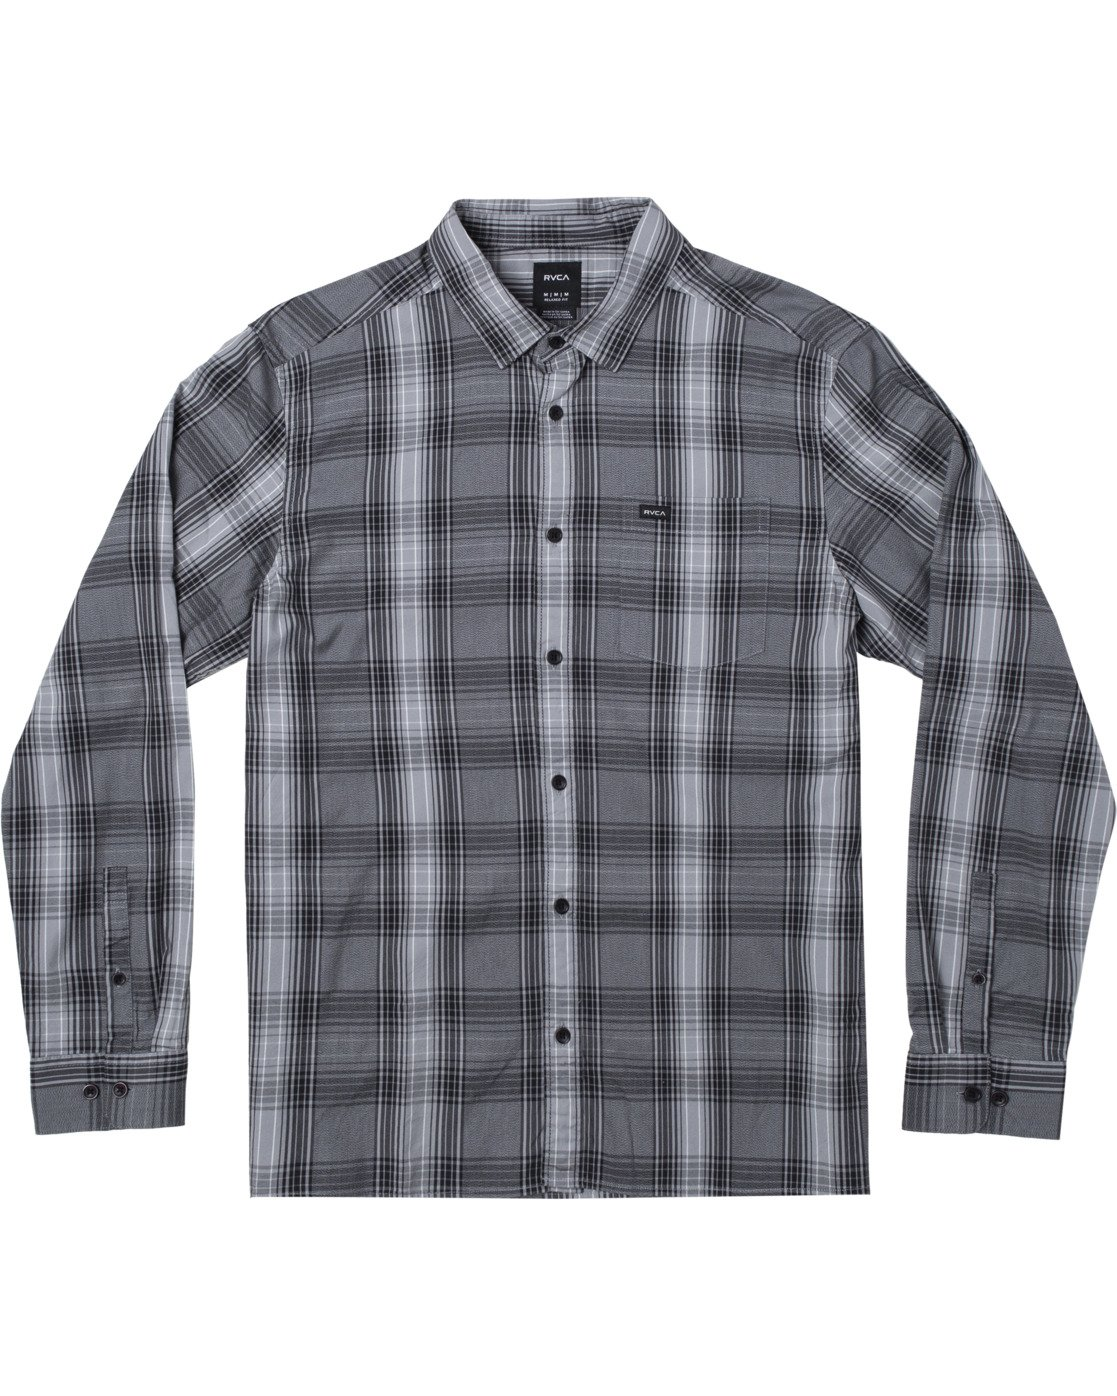 0 INVERNESS PLAID LS  AVYWT00133 RVCA